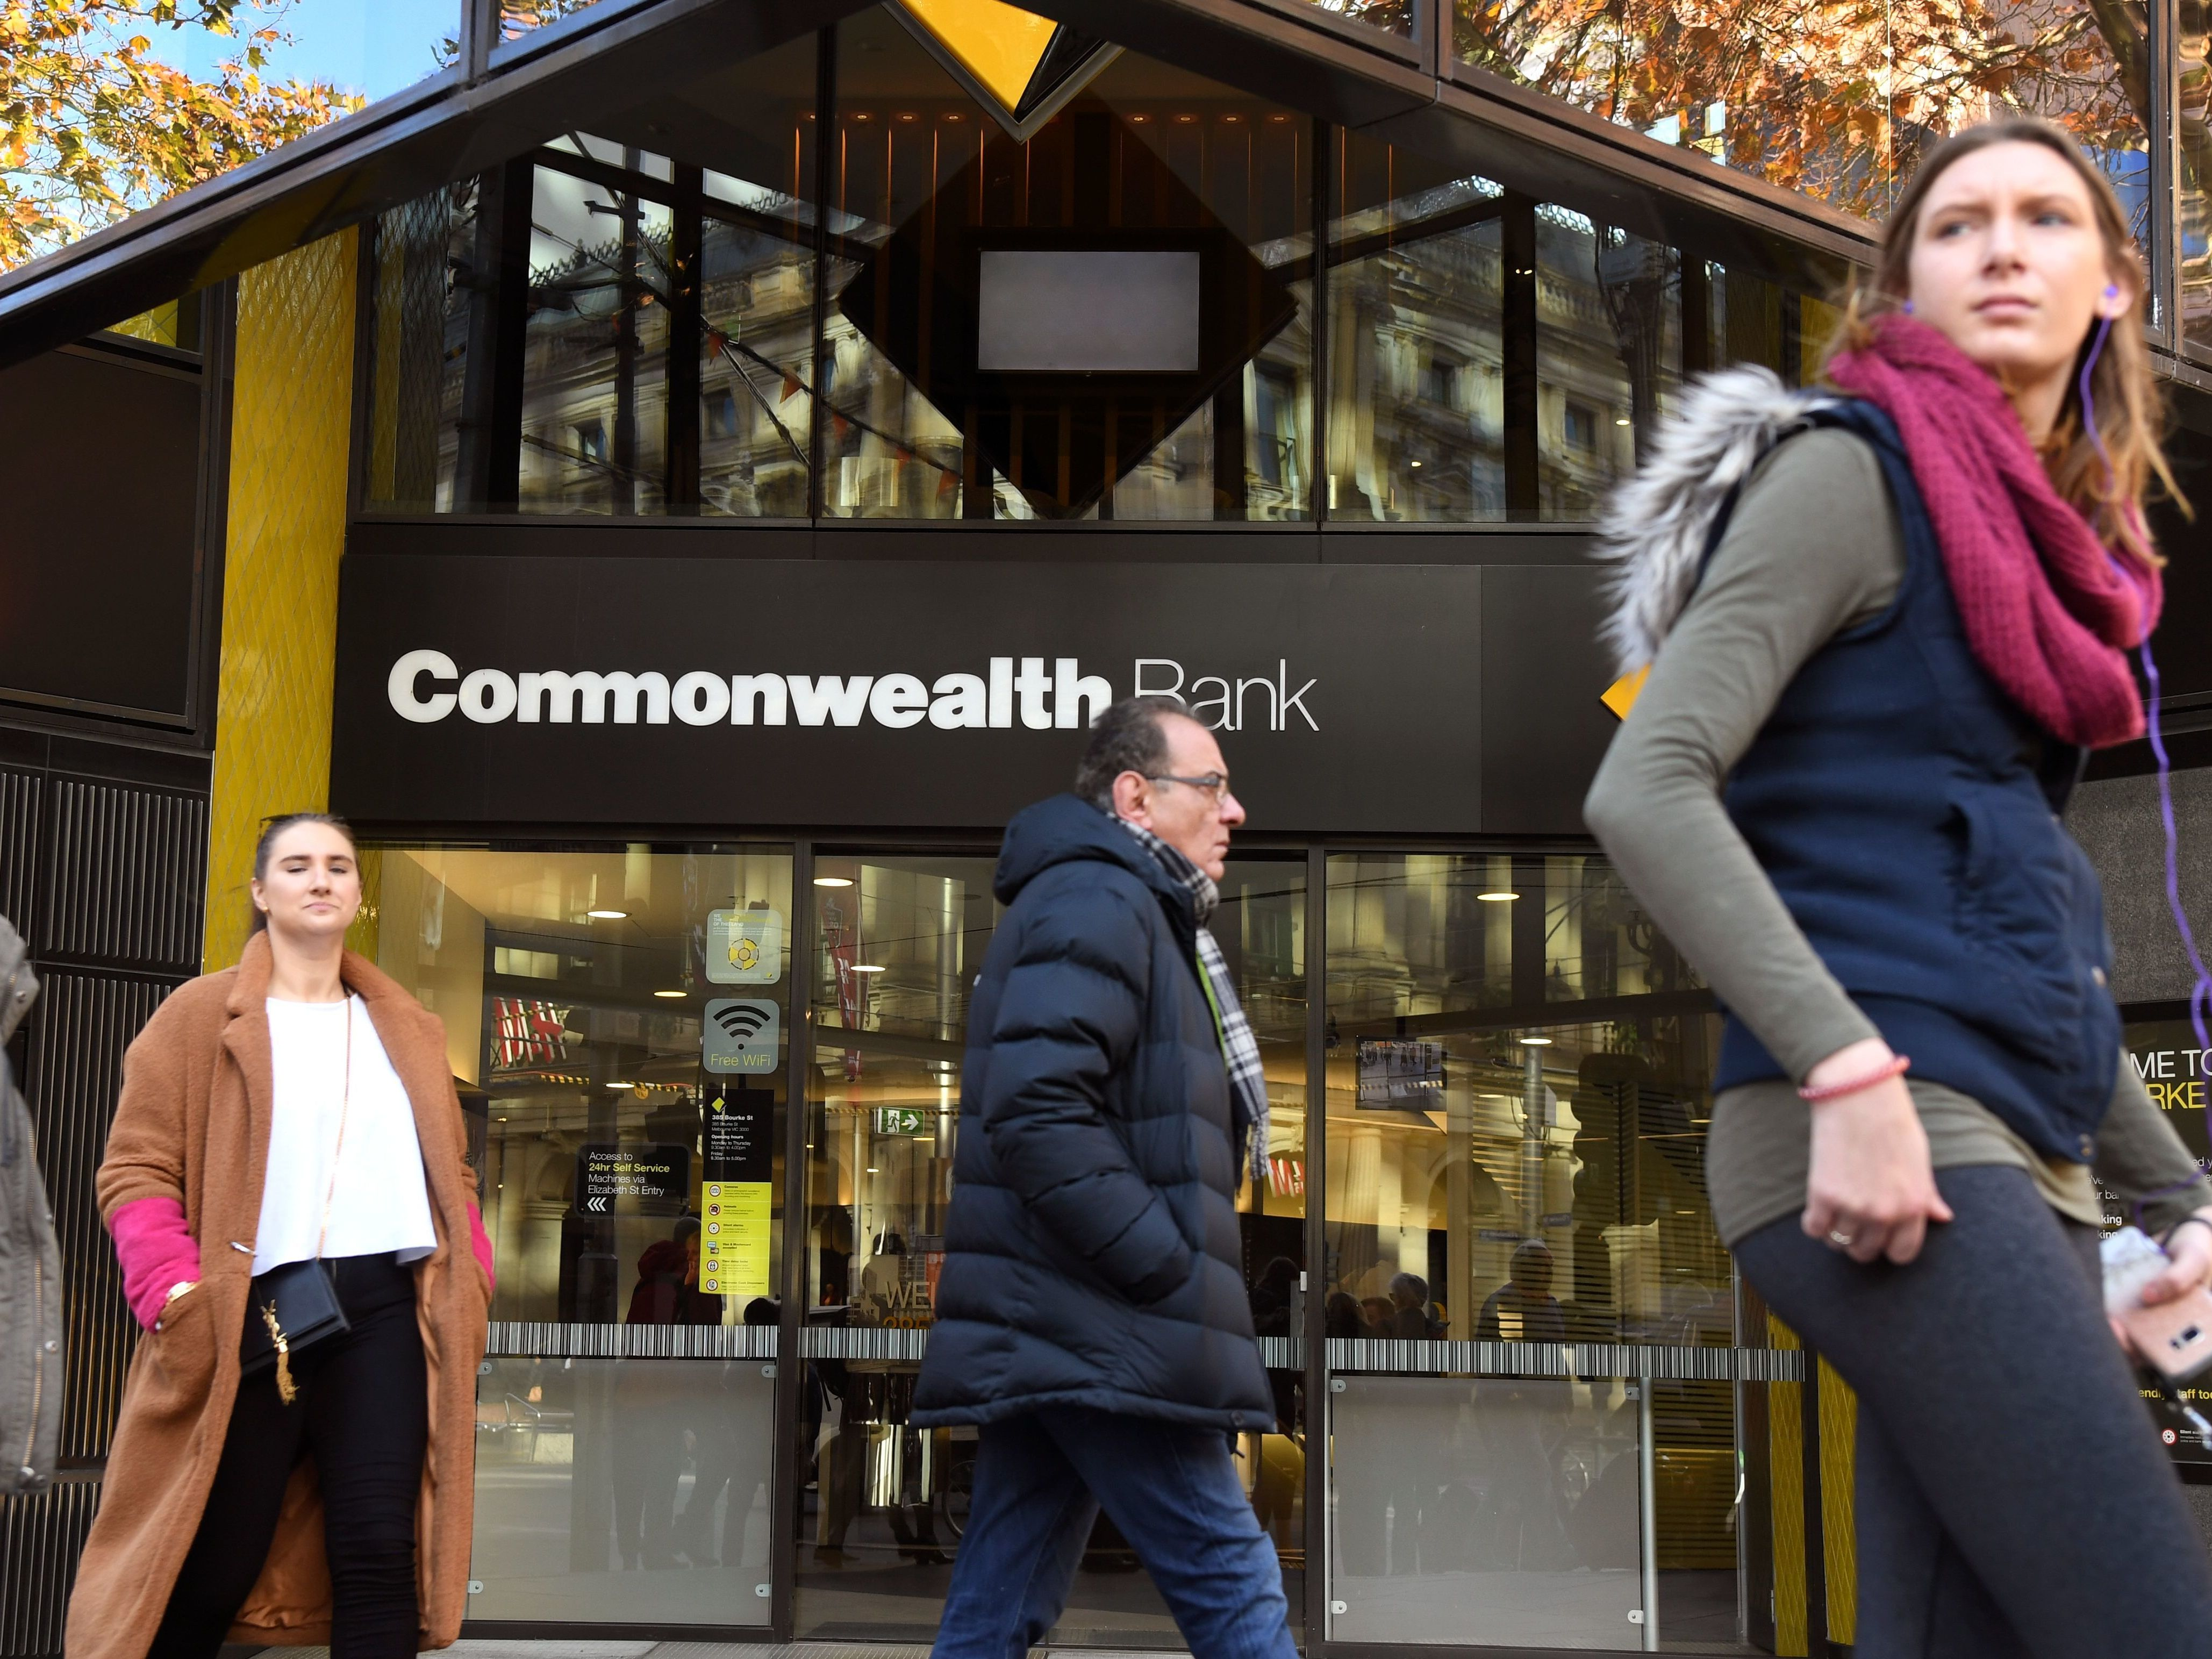 Australian Bank Slapped With Record Fine For Thousands Of Suspicious